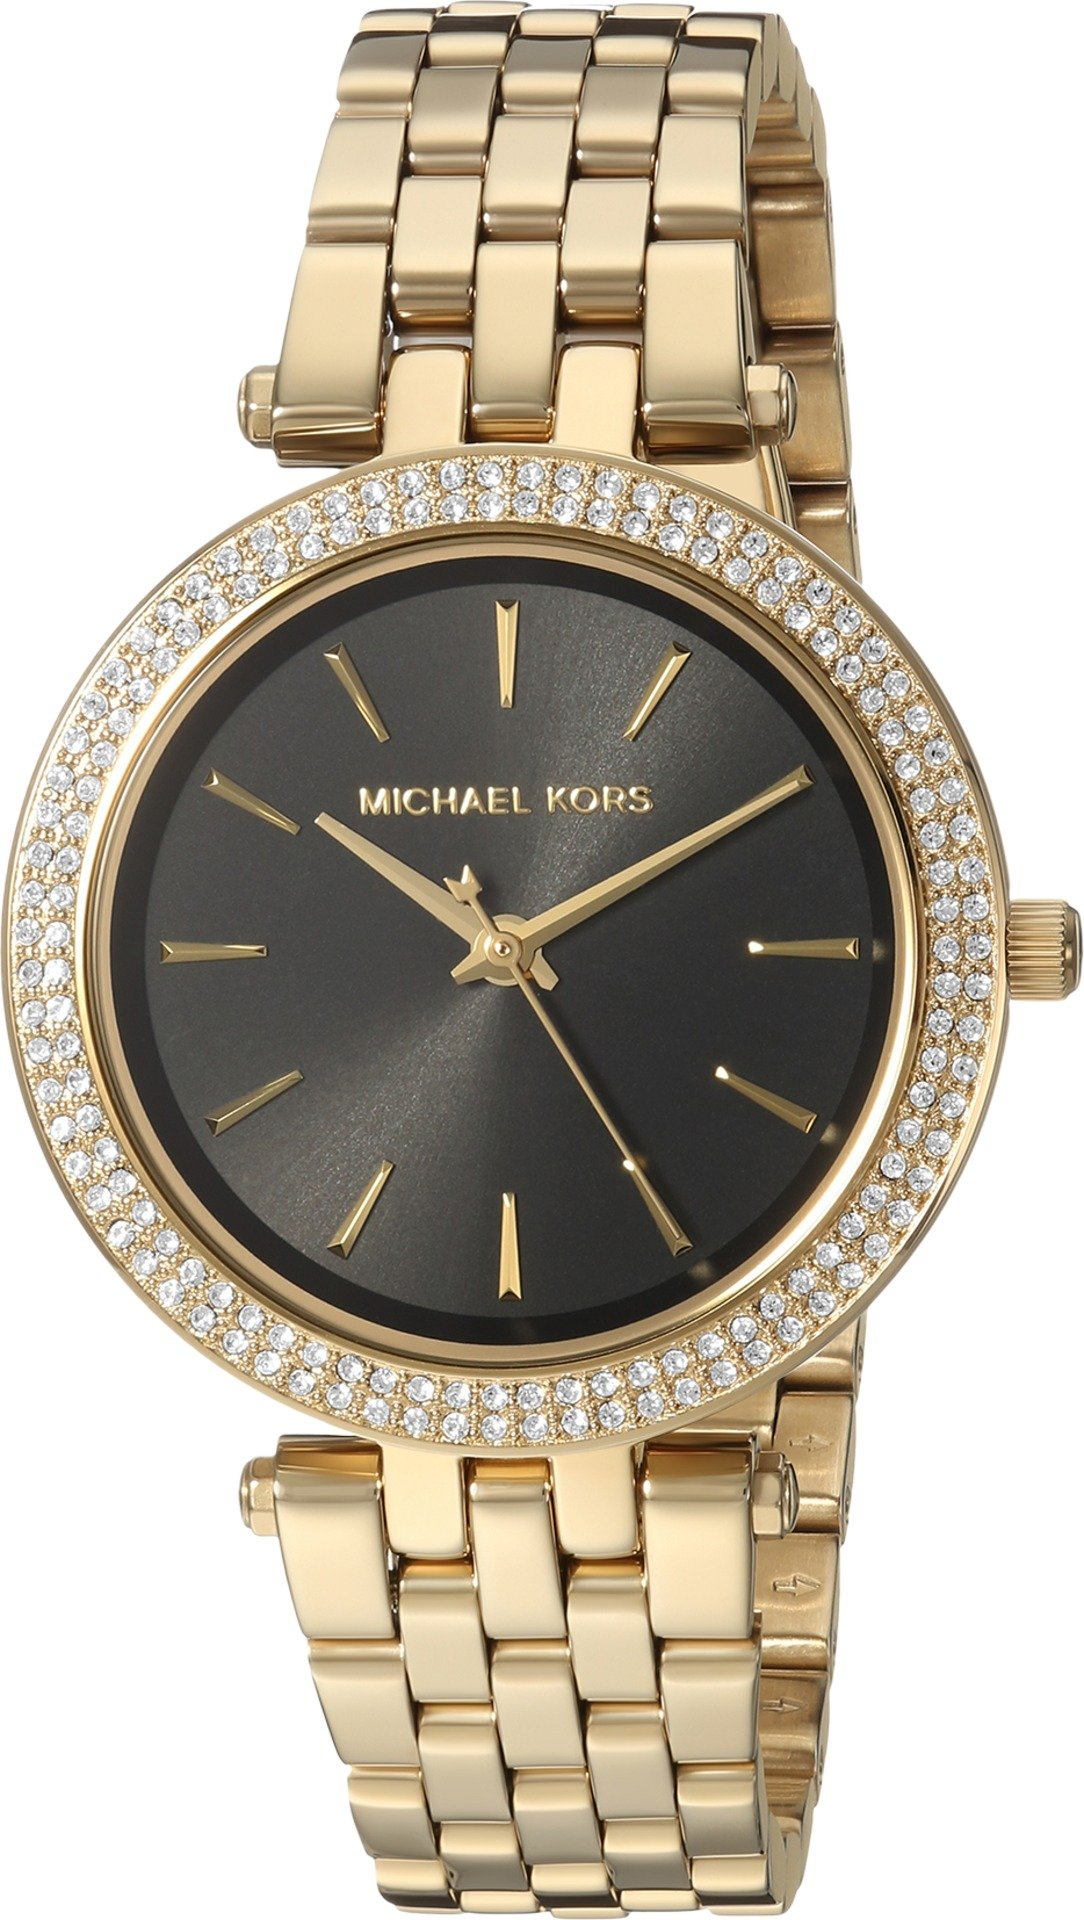 Michael Kors Women's 'Mini Darci' Quartz Stainless Steel Casual Watch, Color:Gold-Toned (Model: MK3738)